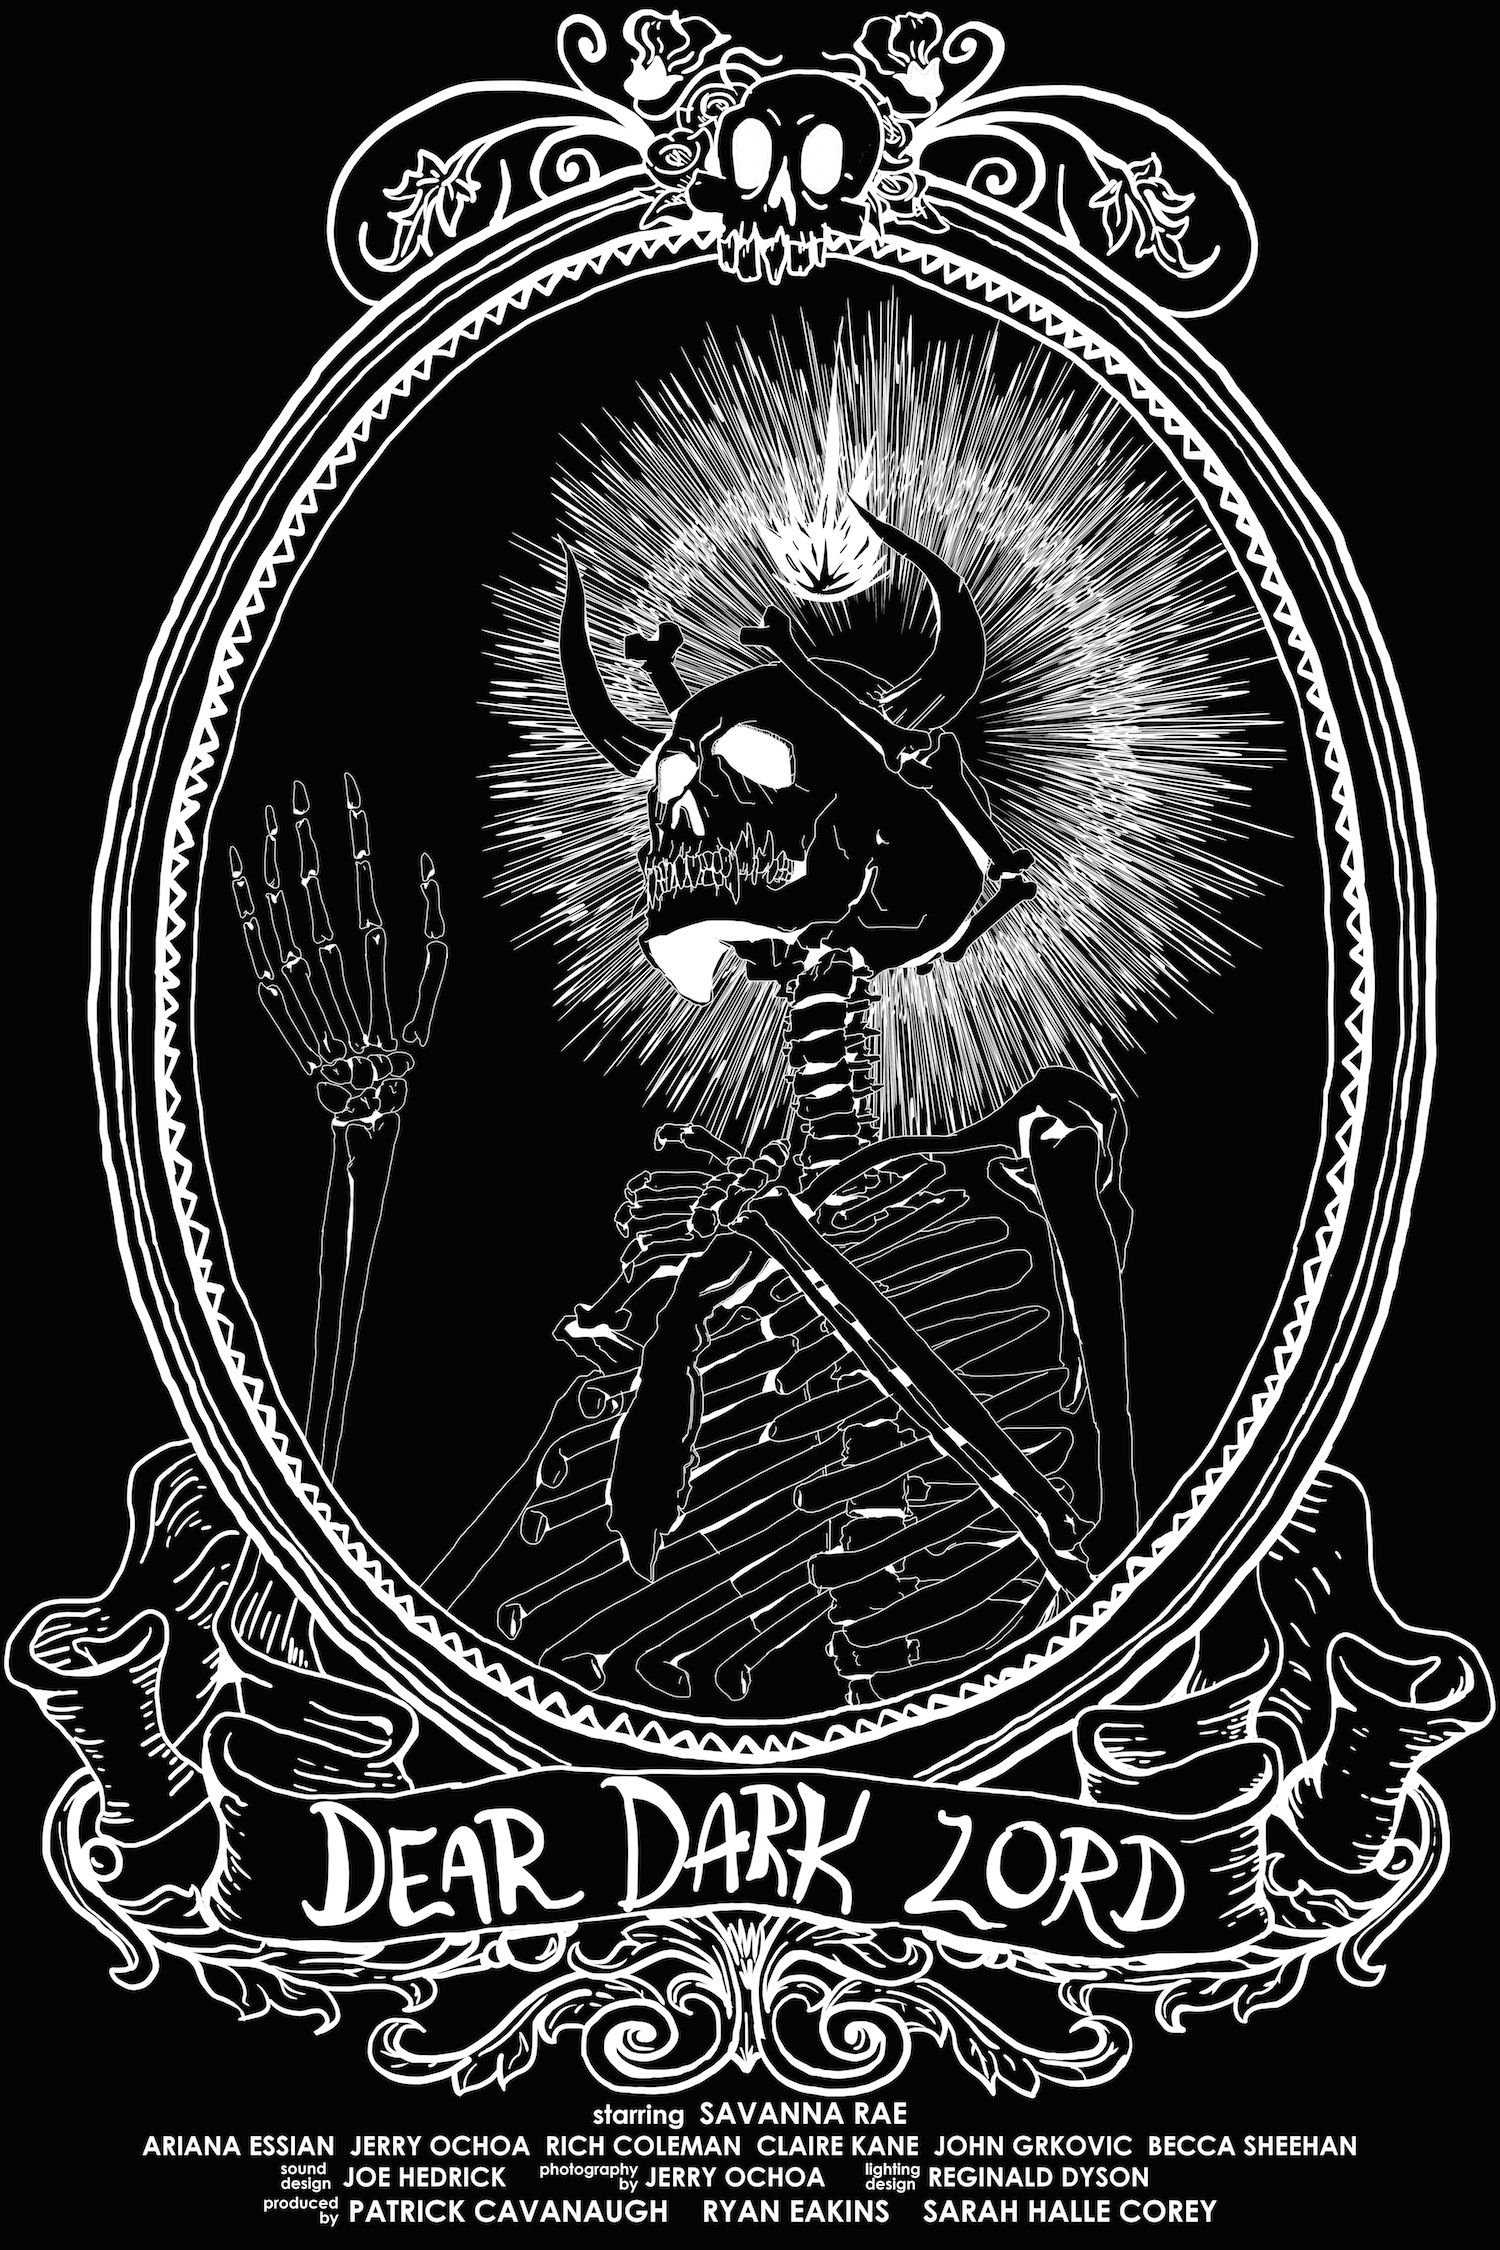 Dear Dark Lord Synopsis - 'Dear Dark Lord' is a web series that chronicles a young woman's dual struggles to: 1) Make it in the big city, and 2) Serve an unholy wretch known as